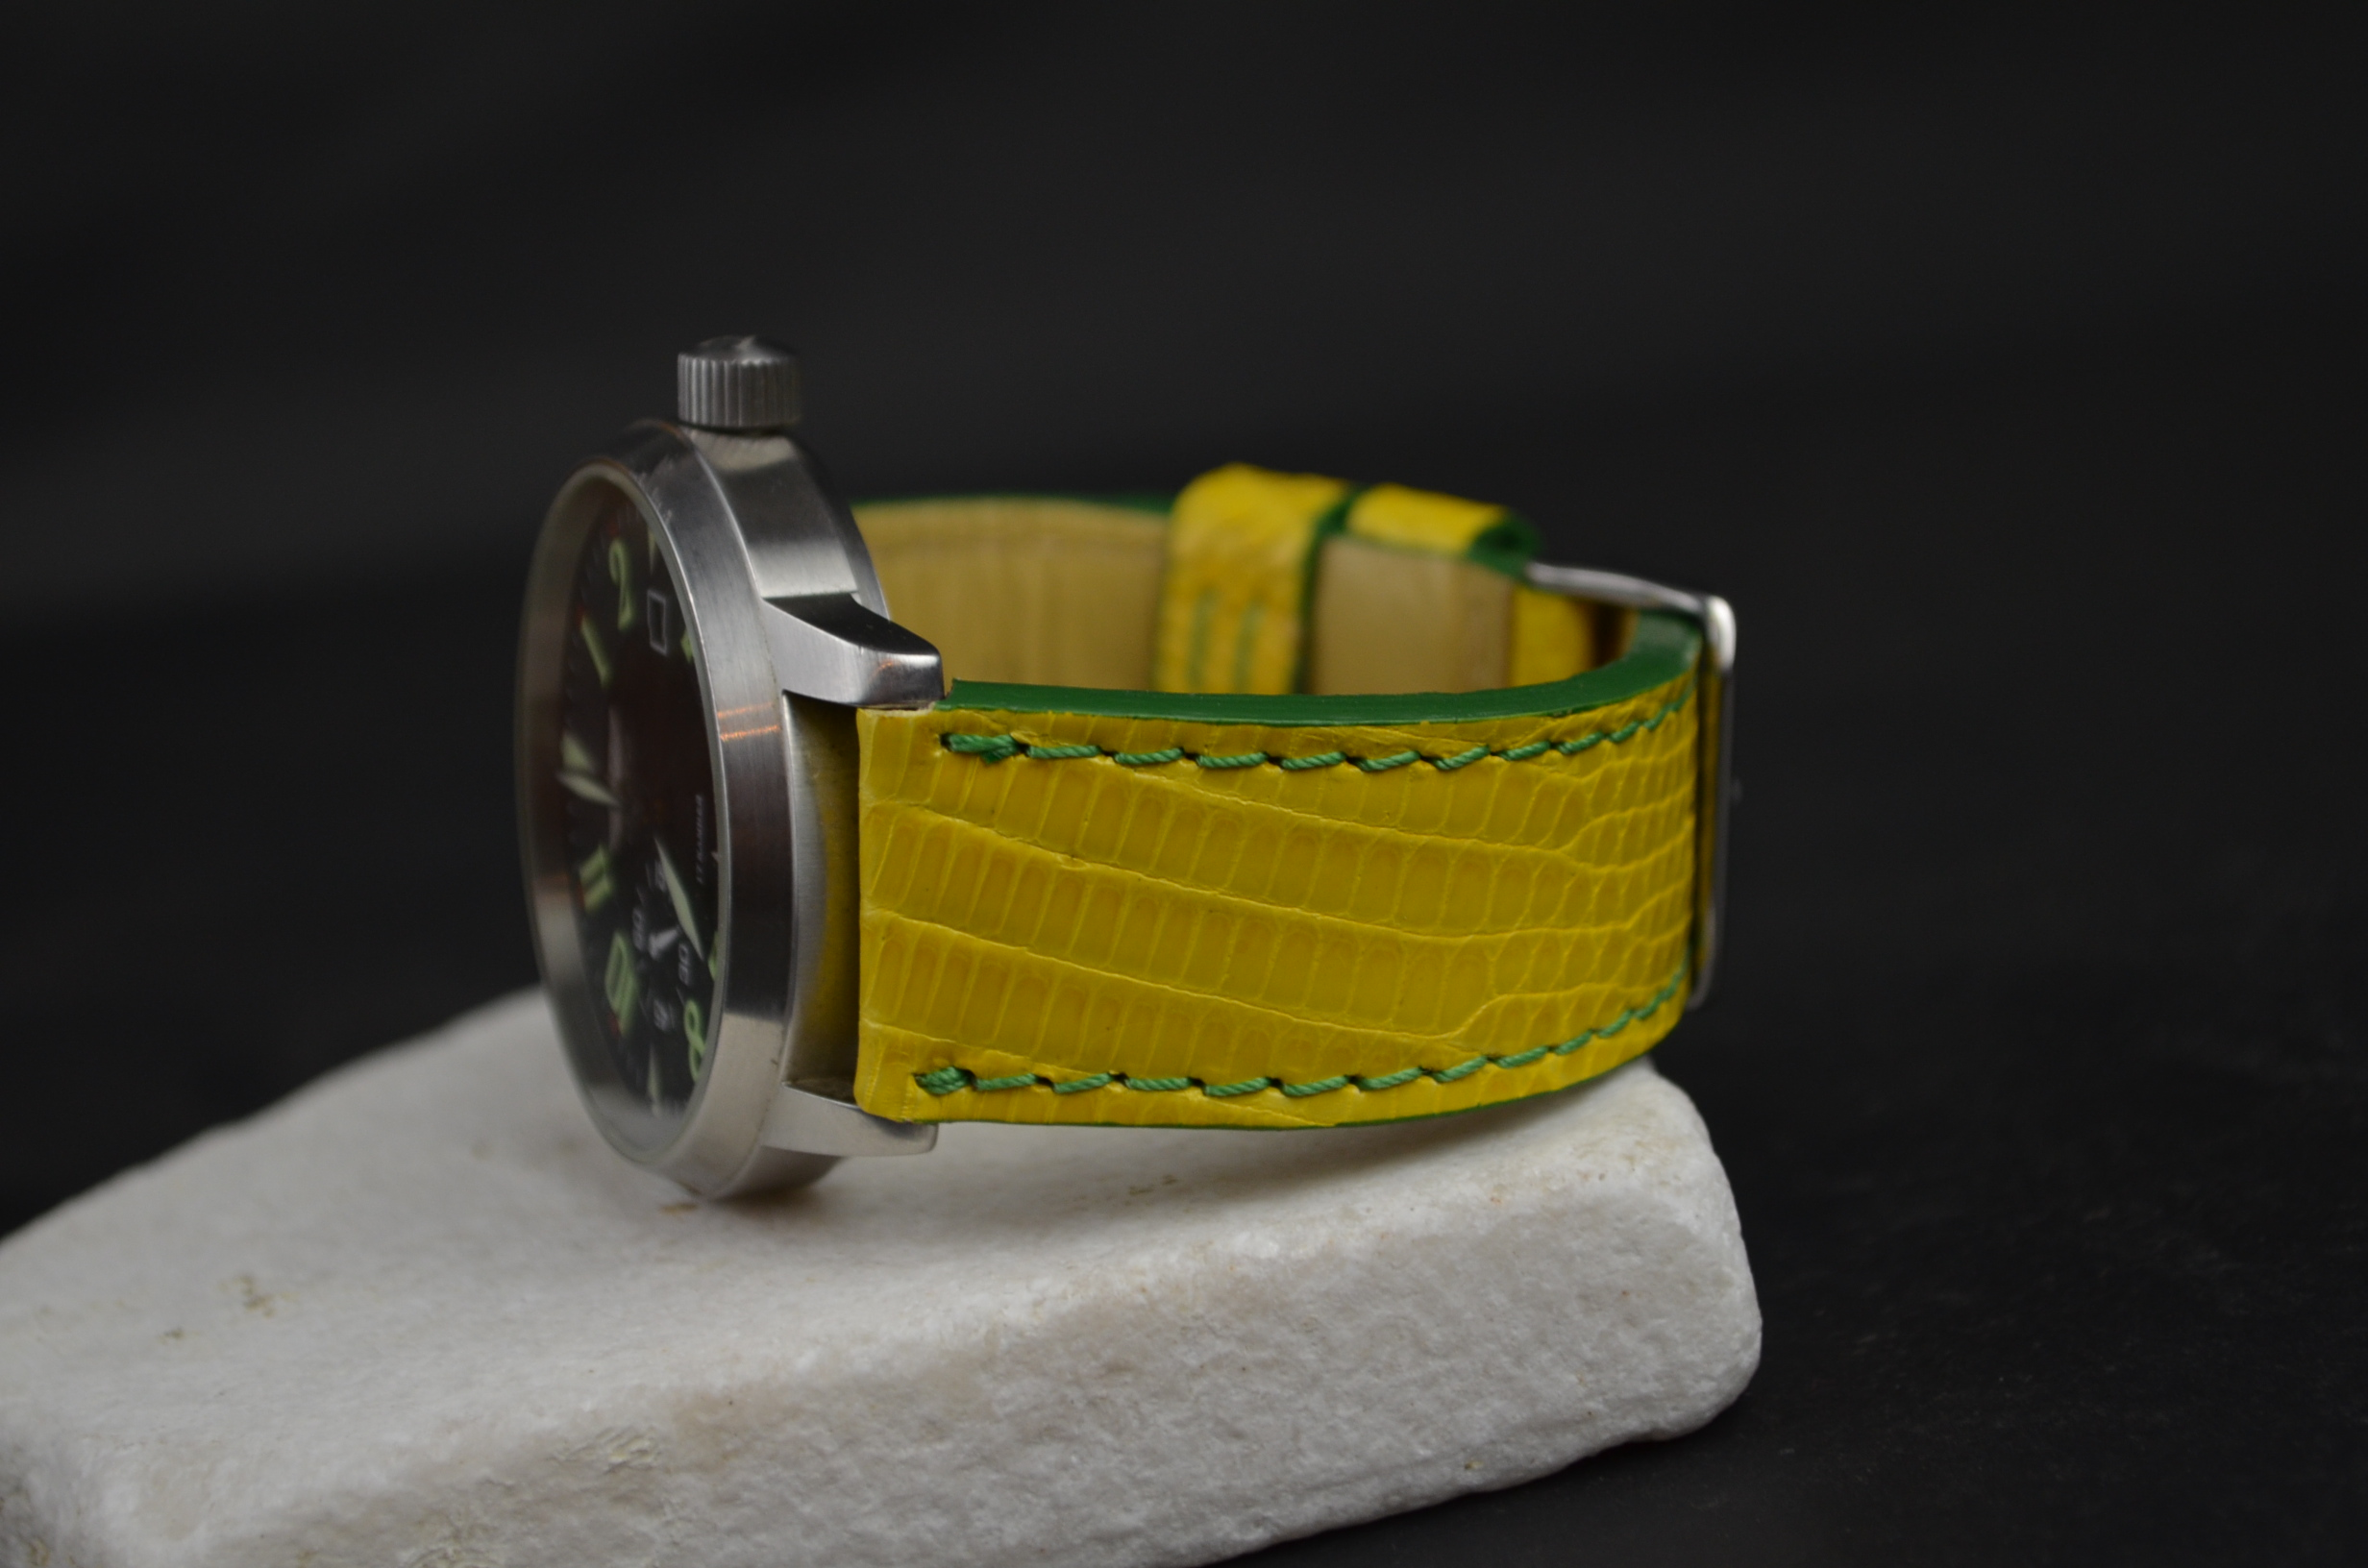 BITTER LEMON is one of our hand crafted watch straps. Available in yellow color, 3.5 - 4 mm thick.